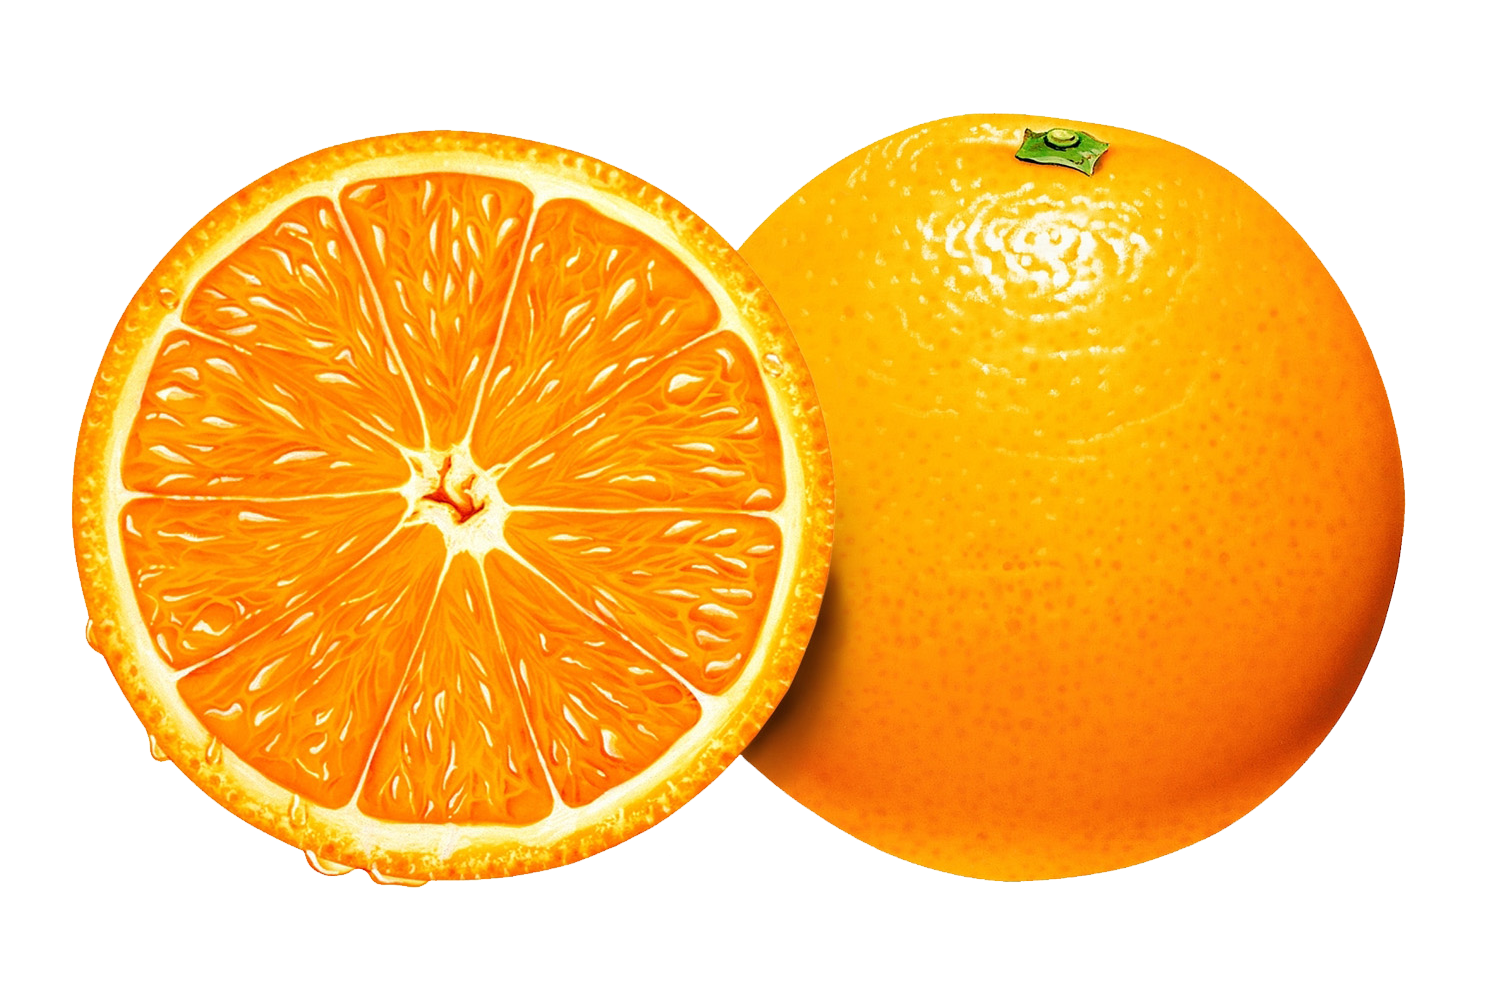 Fresh Orange Mandarin 4247836 2615x2225 All For Desktop